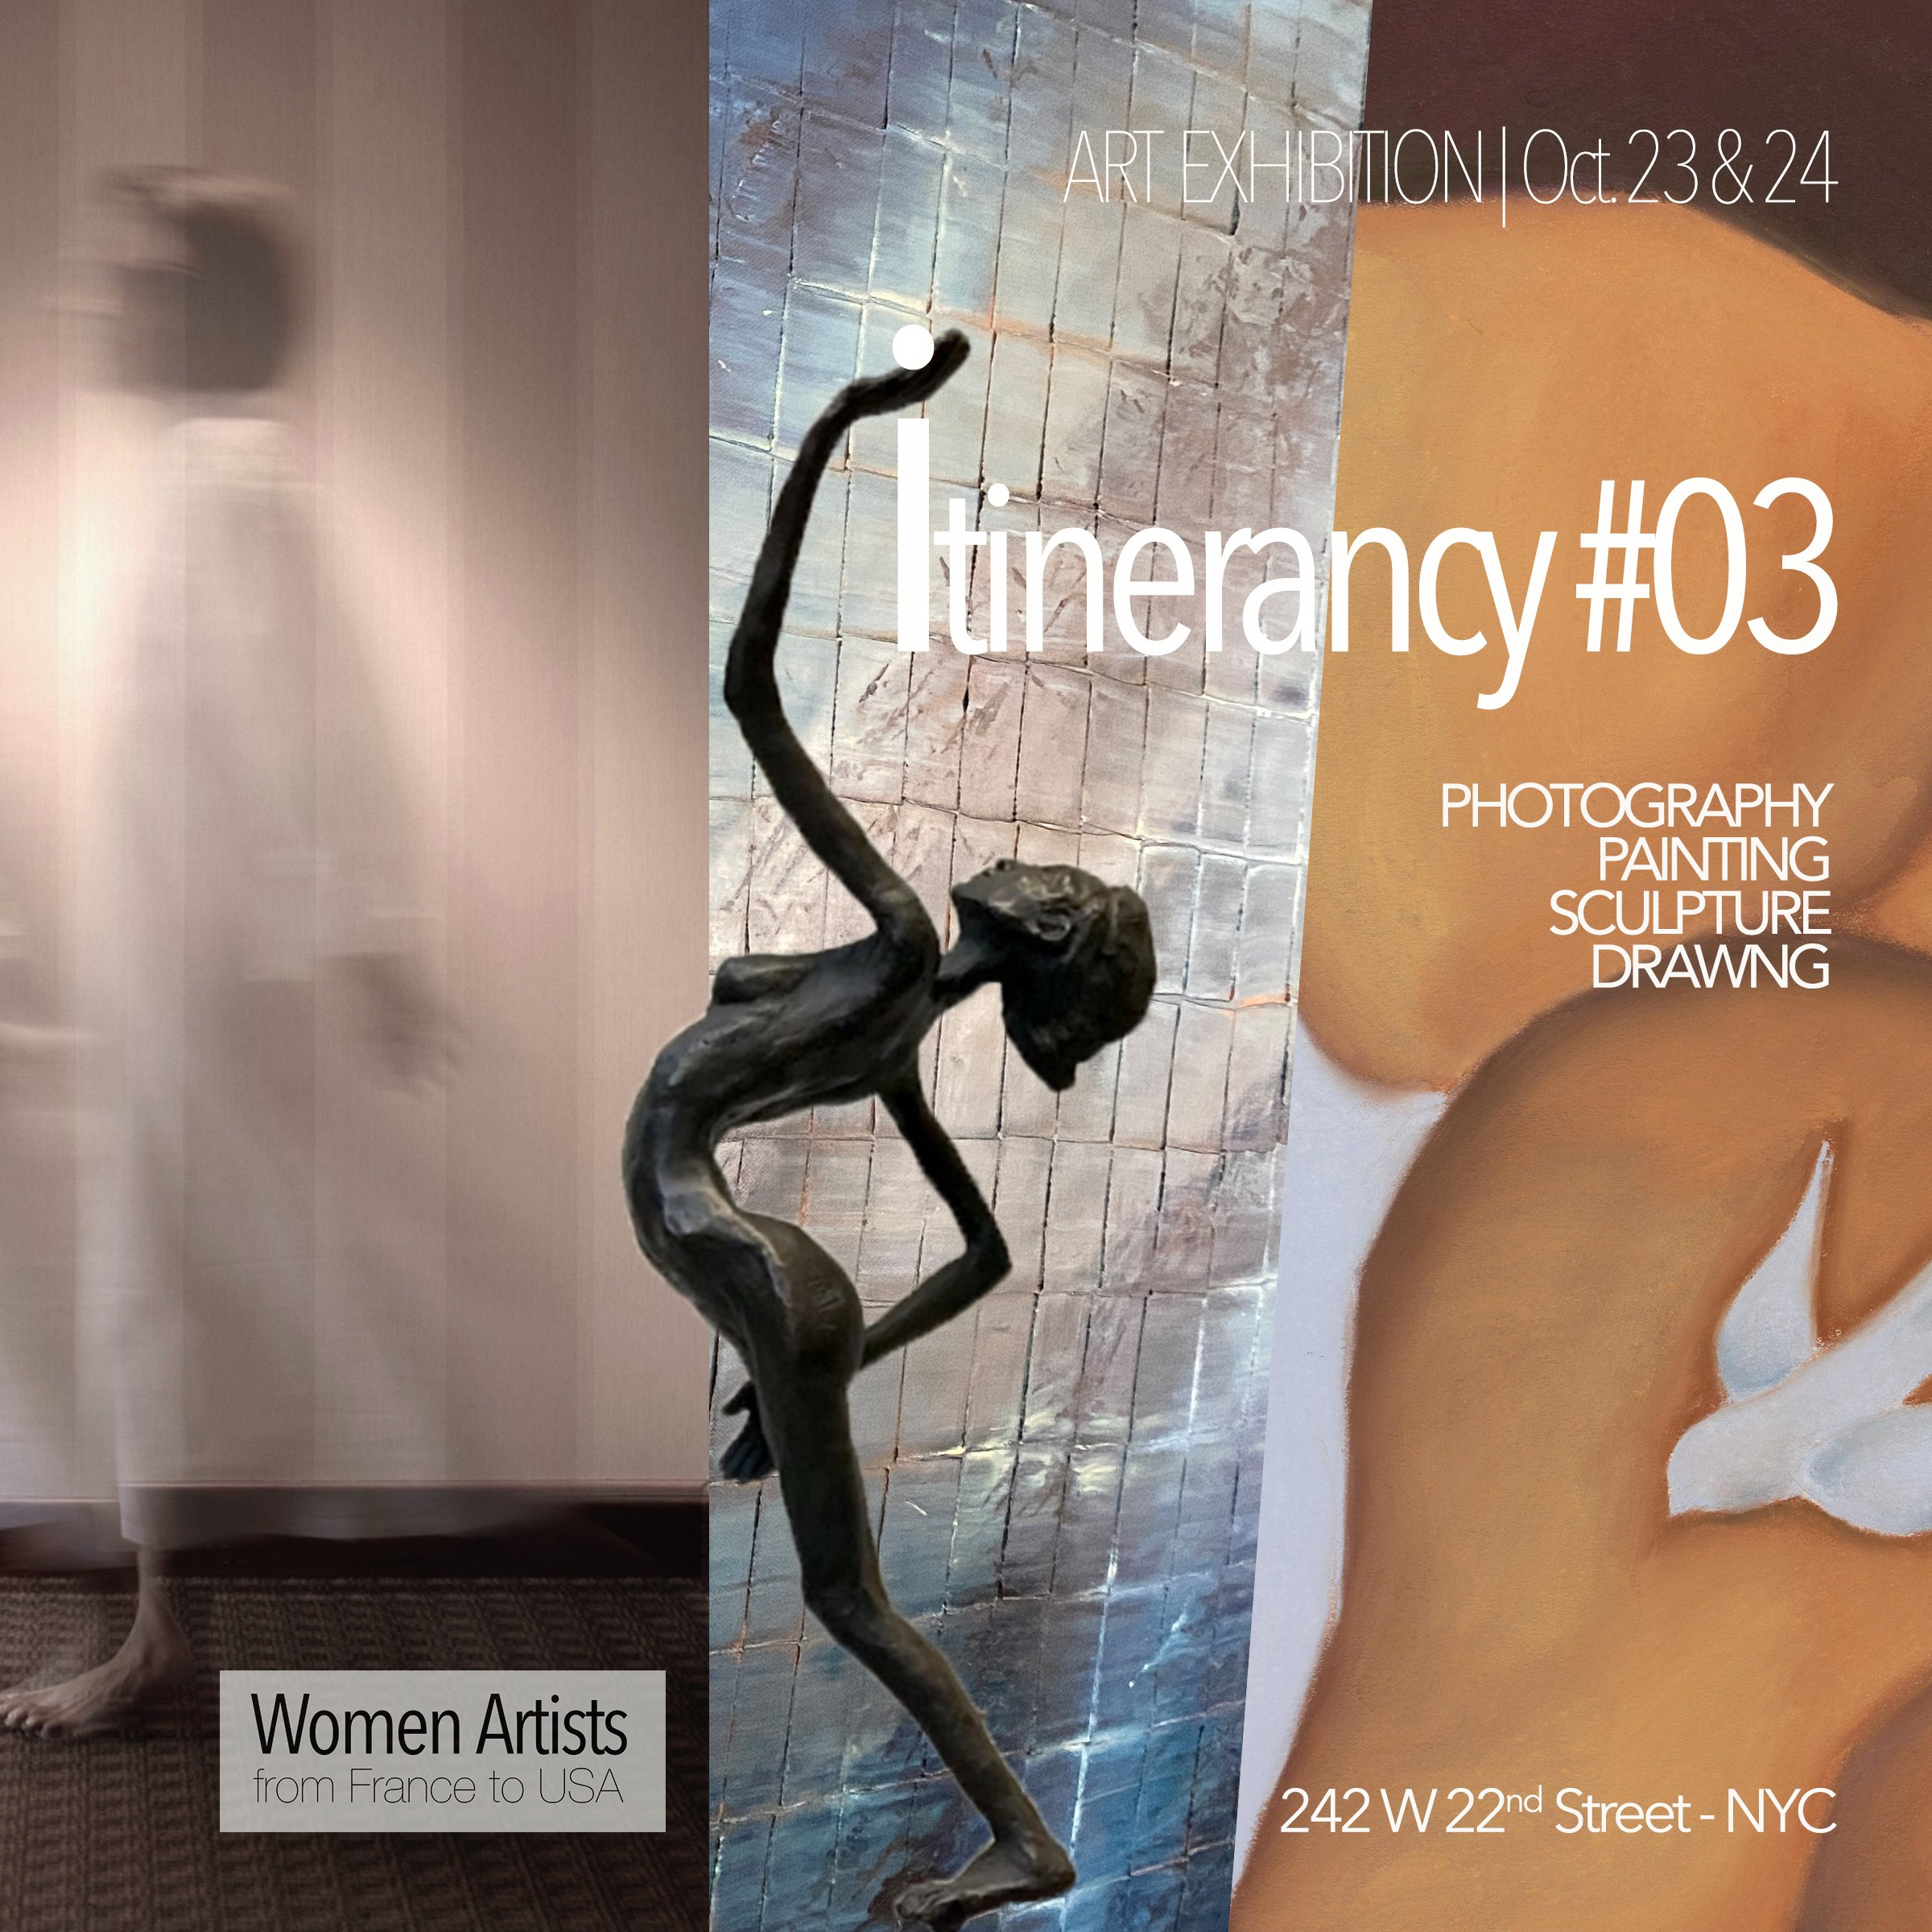 Women Artists from France to USA - Itinerancy #3